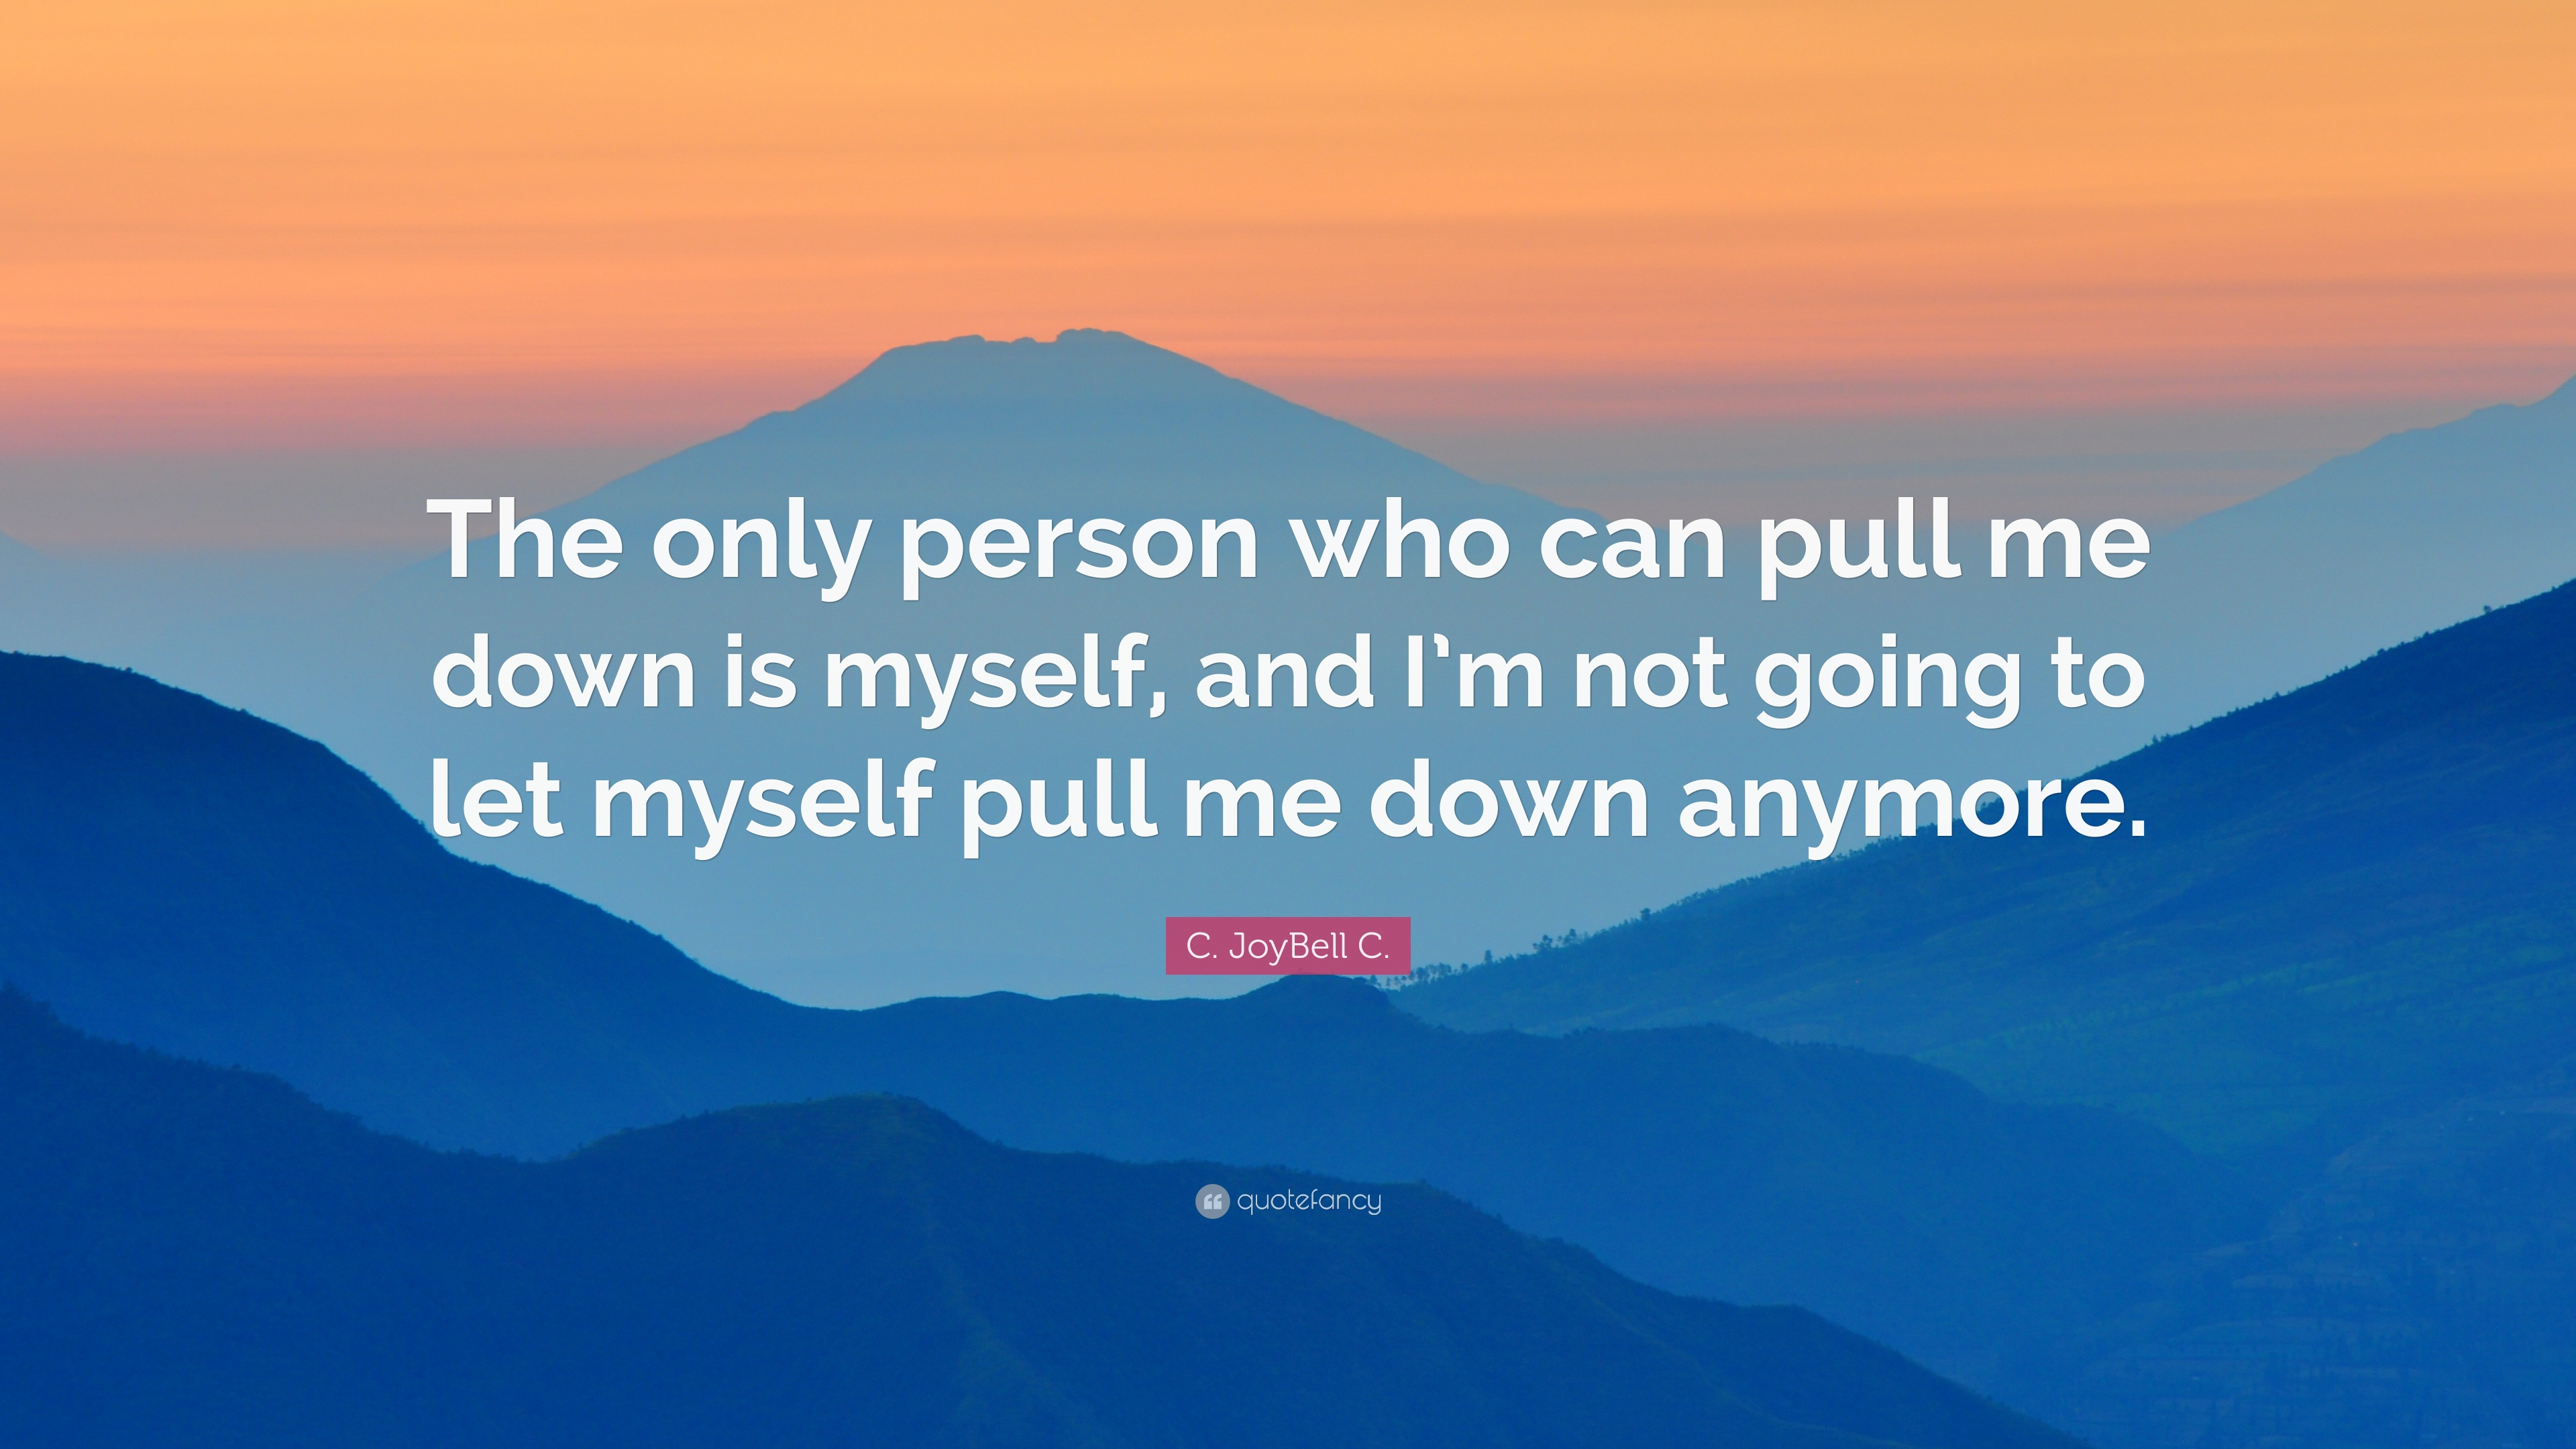 c joybell c quote the only person who can pull me down